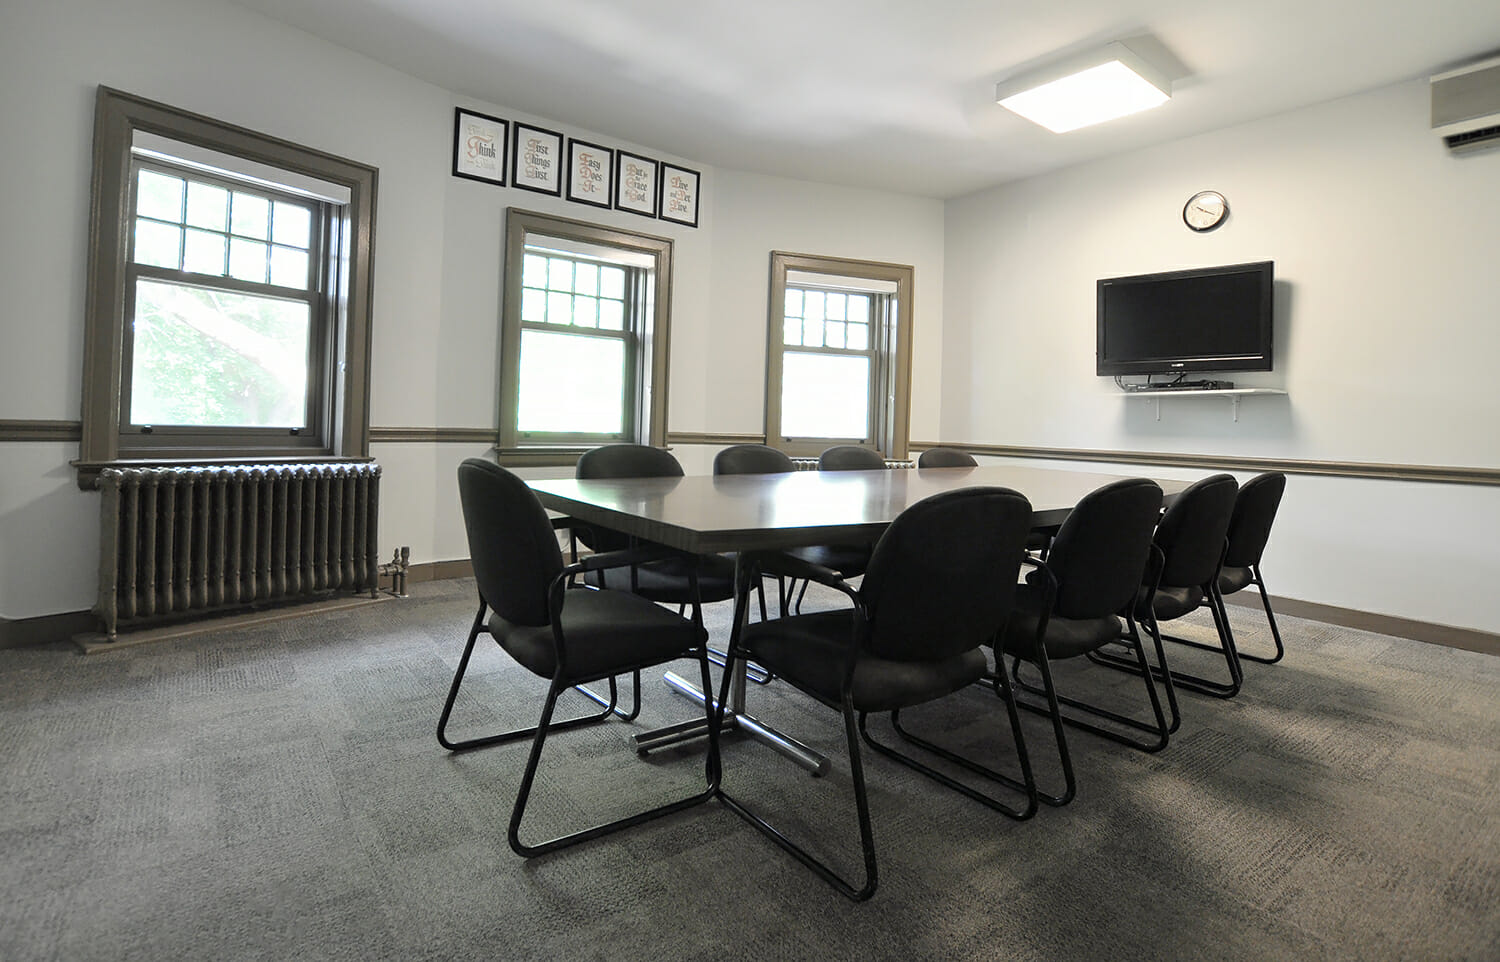 Table and chairs in Punanai Centre group room.